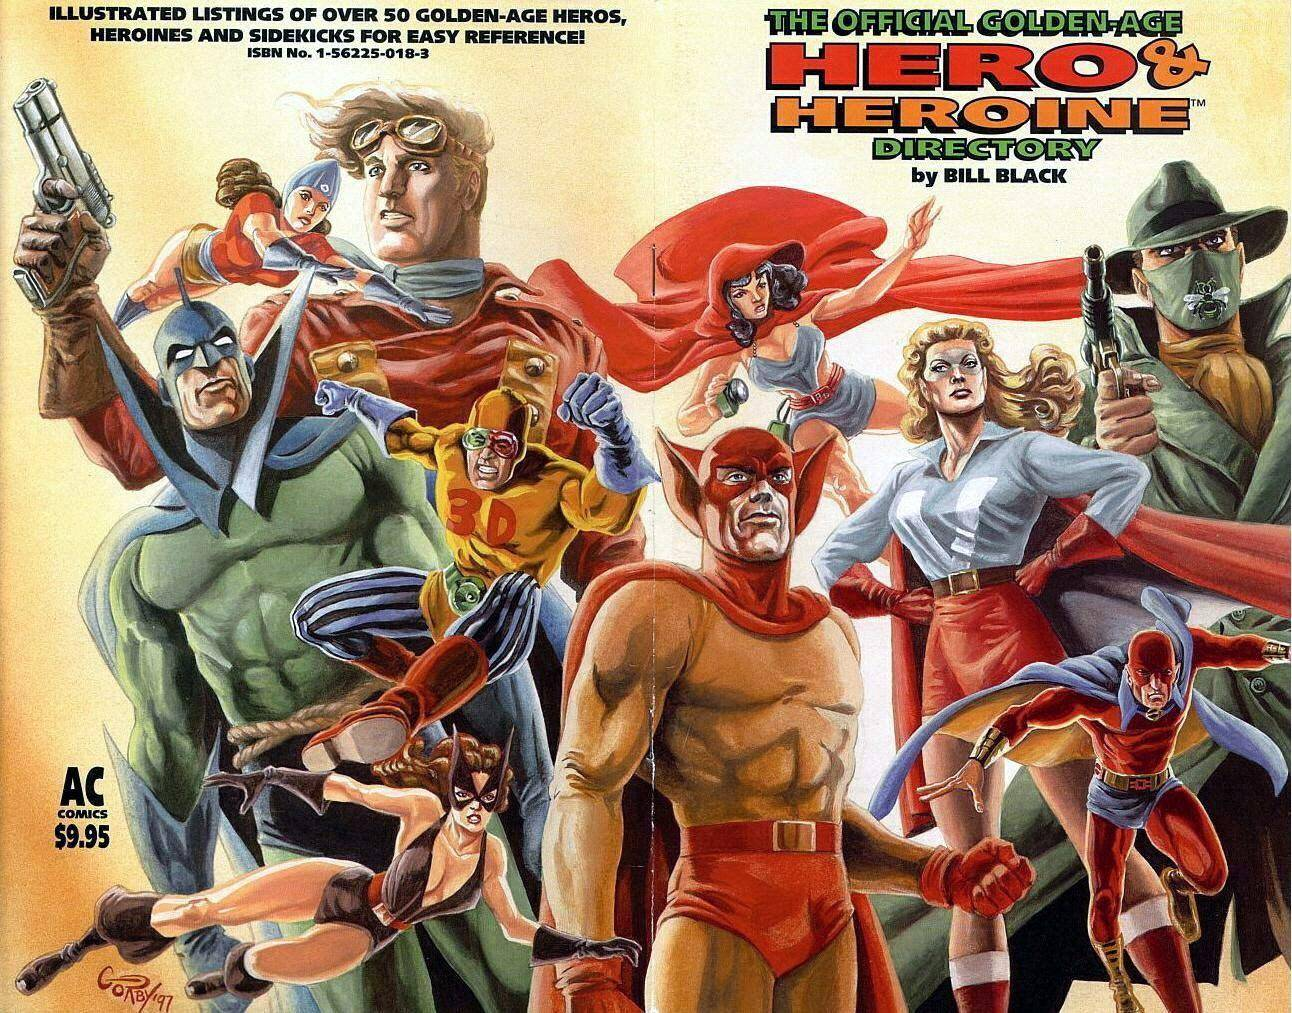 Fo Buck - Official Golden-Age Hero and Heroine Directory 1 cbr